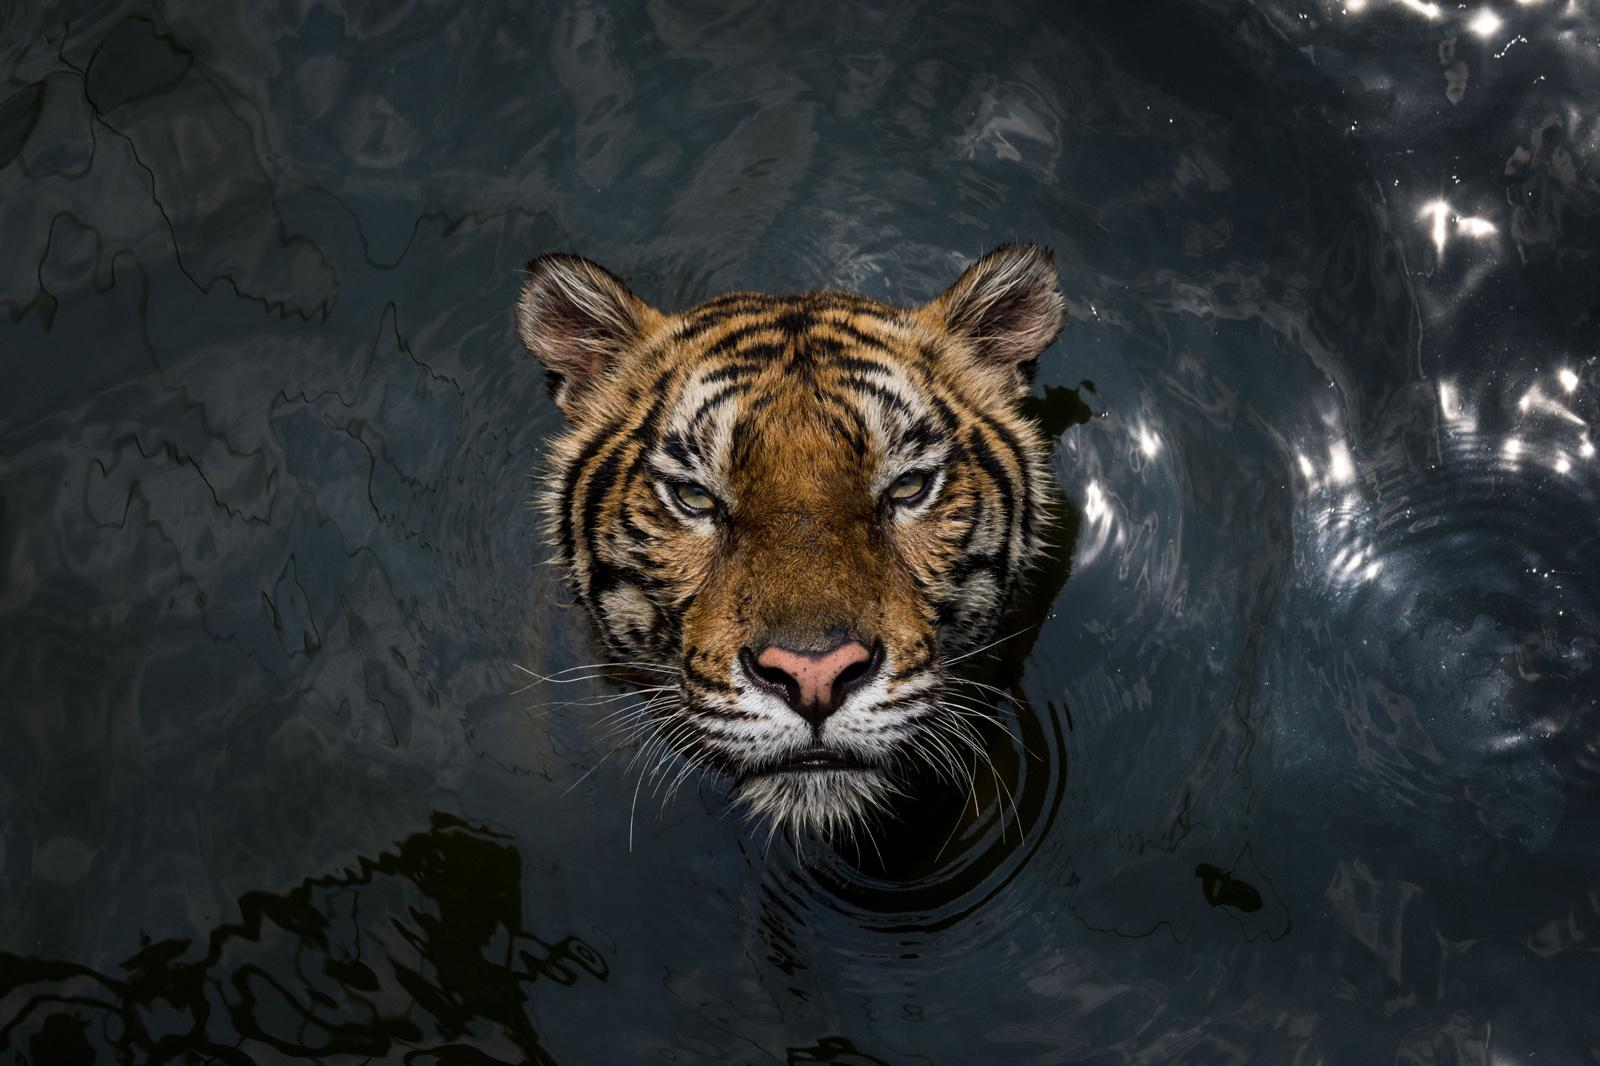 Sriracha, Thailand � September 29, 2018 : A tiger swims in an enclosure at the Samut Prakan Crocodile Farm and Zoo. Credit: Amanda Mustard for New York Times